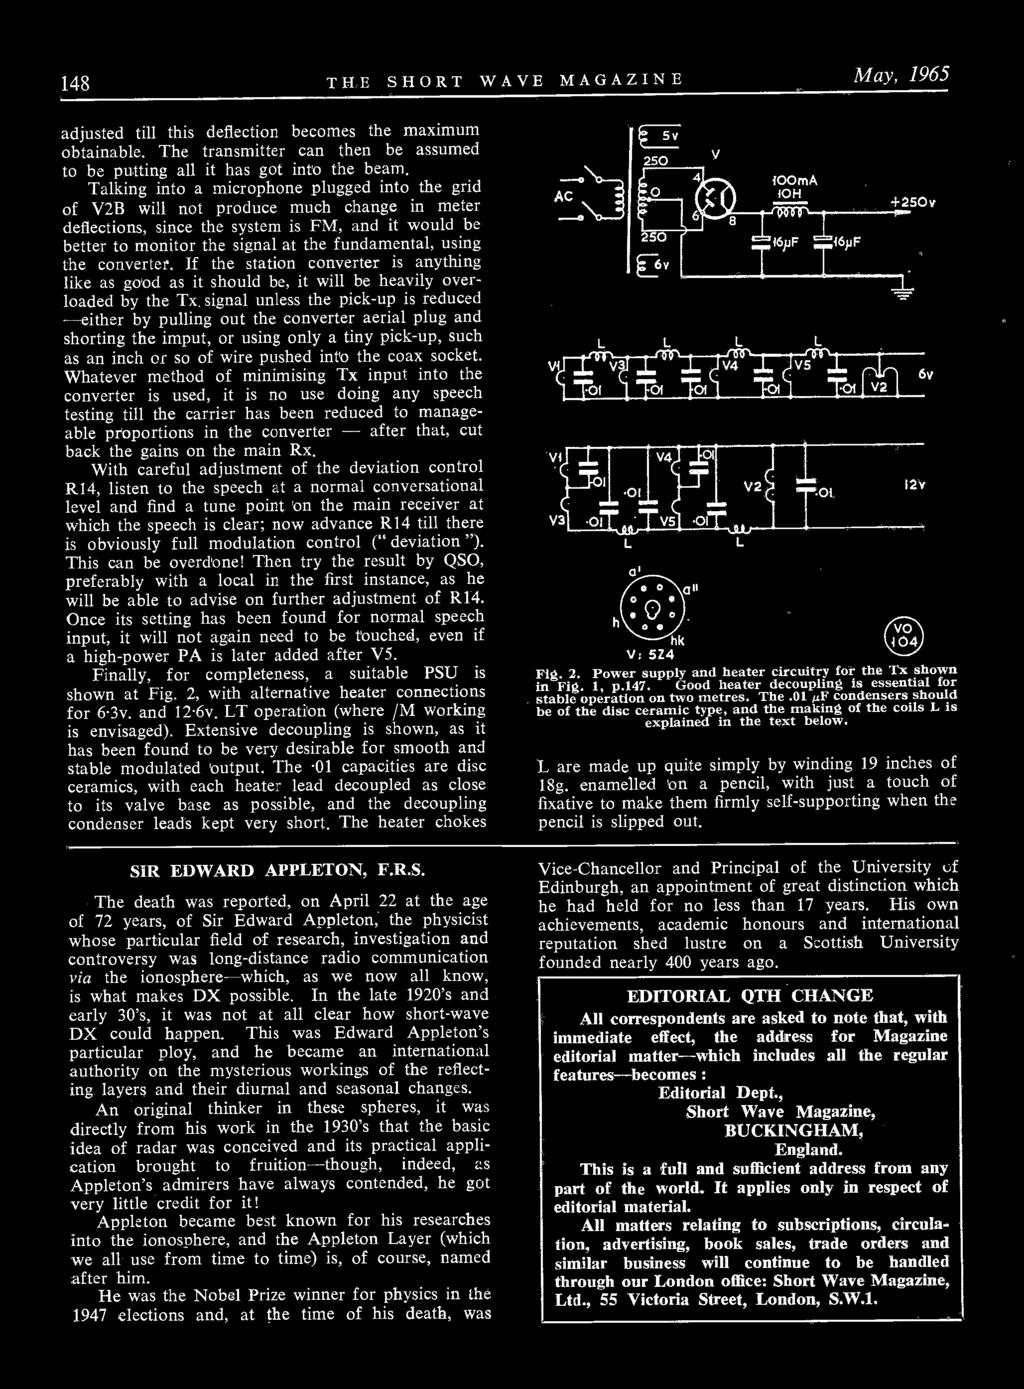 Kw Models For 1965 Ssb Transceiver 600 Linear Amp 2000a Beam Circuits Quad Opamp Walker Americanradiohistorycom 148 The Short Wave Magazine May Adjusted Till This